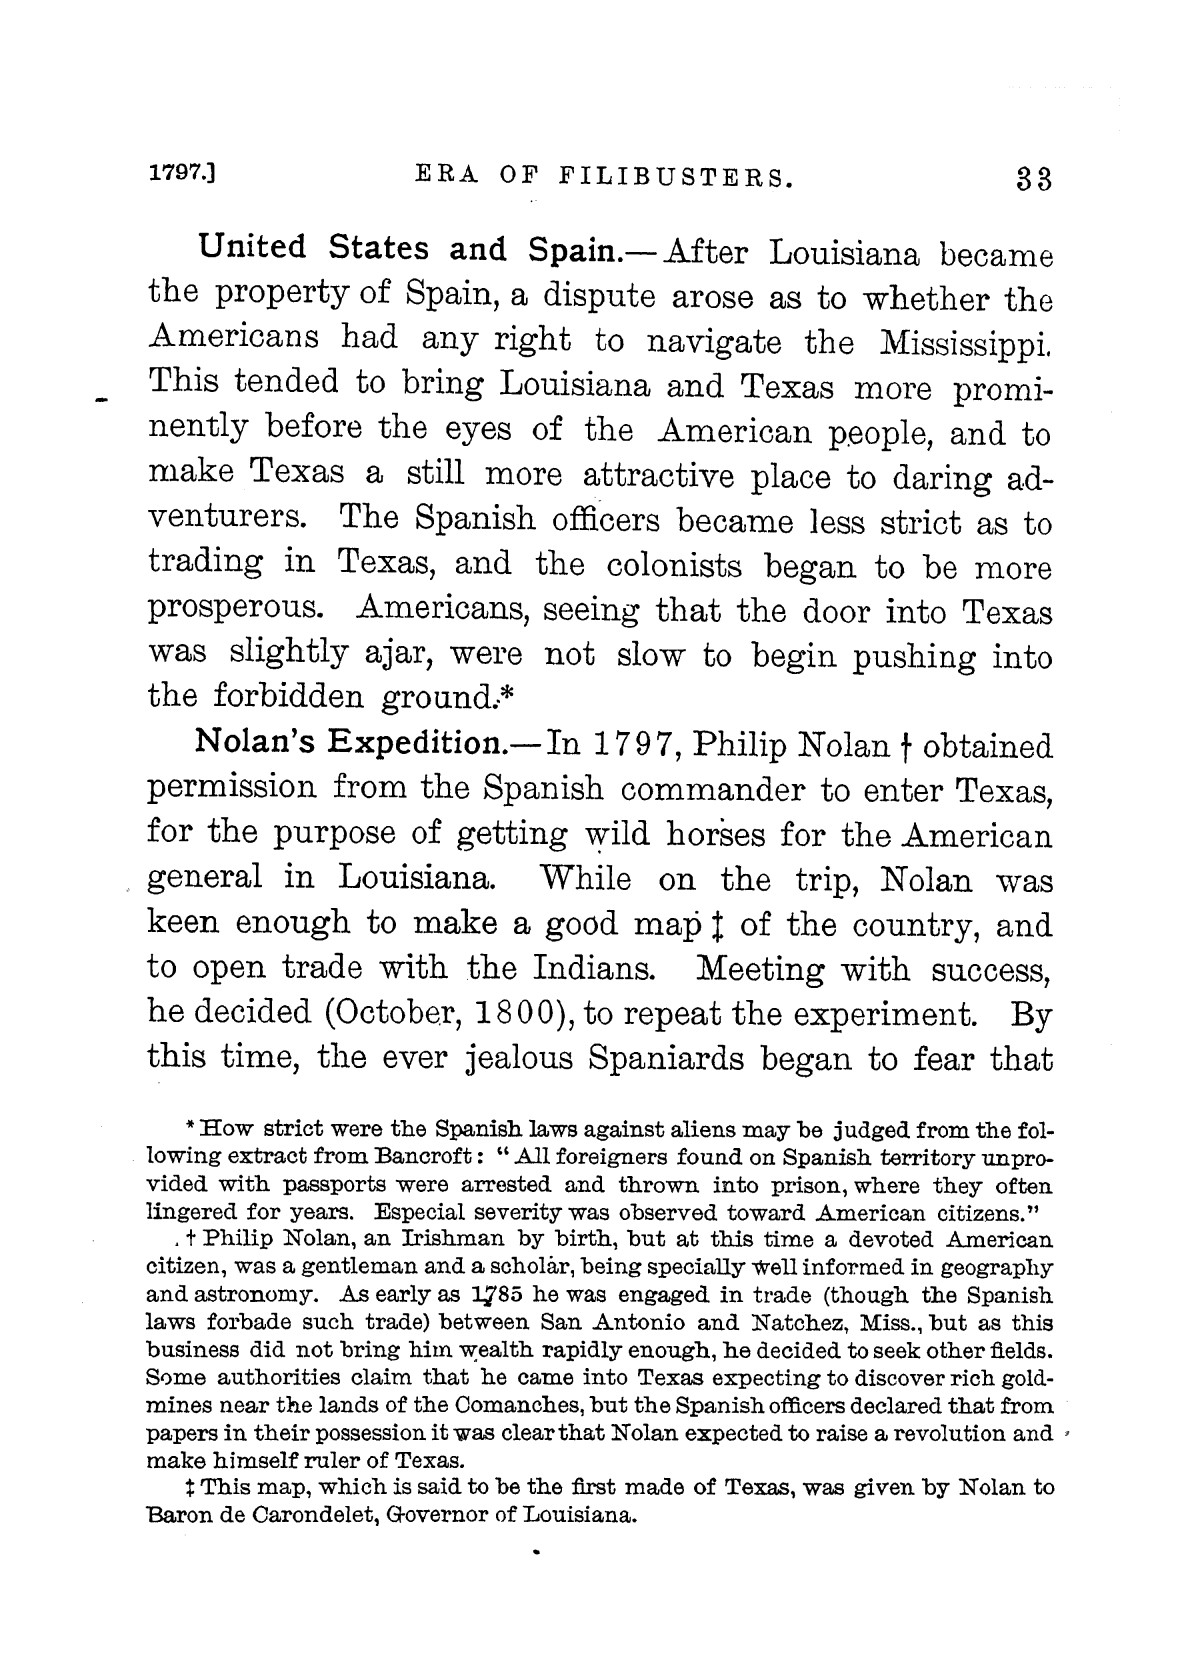 A new history of Texas for schools : also for general reading and for teachers preparing themselves for examination                                                                                                      [Sequence #]: 47 of 412